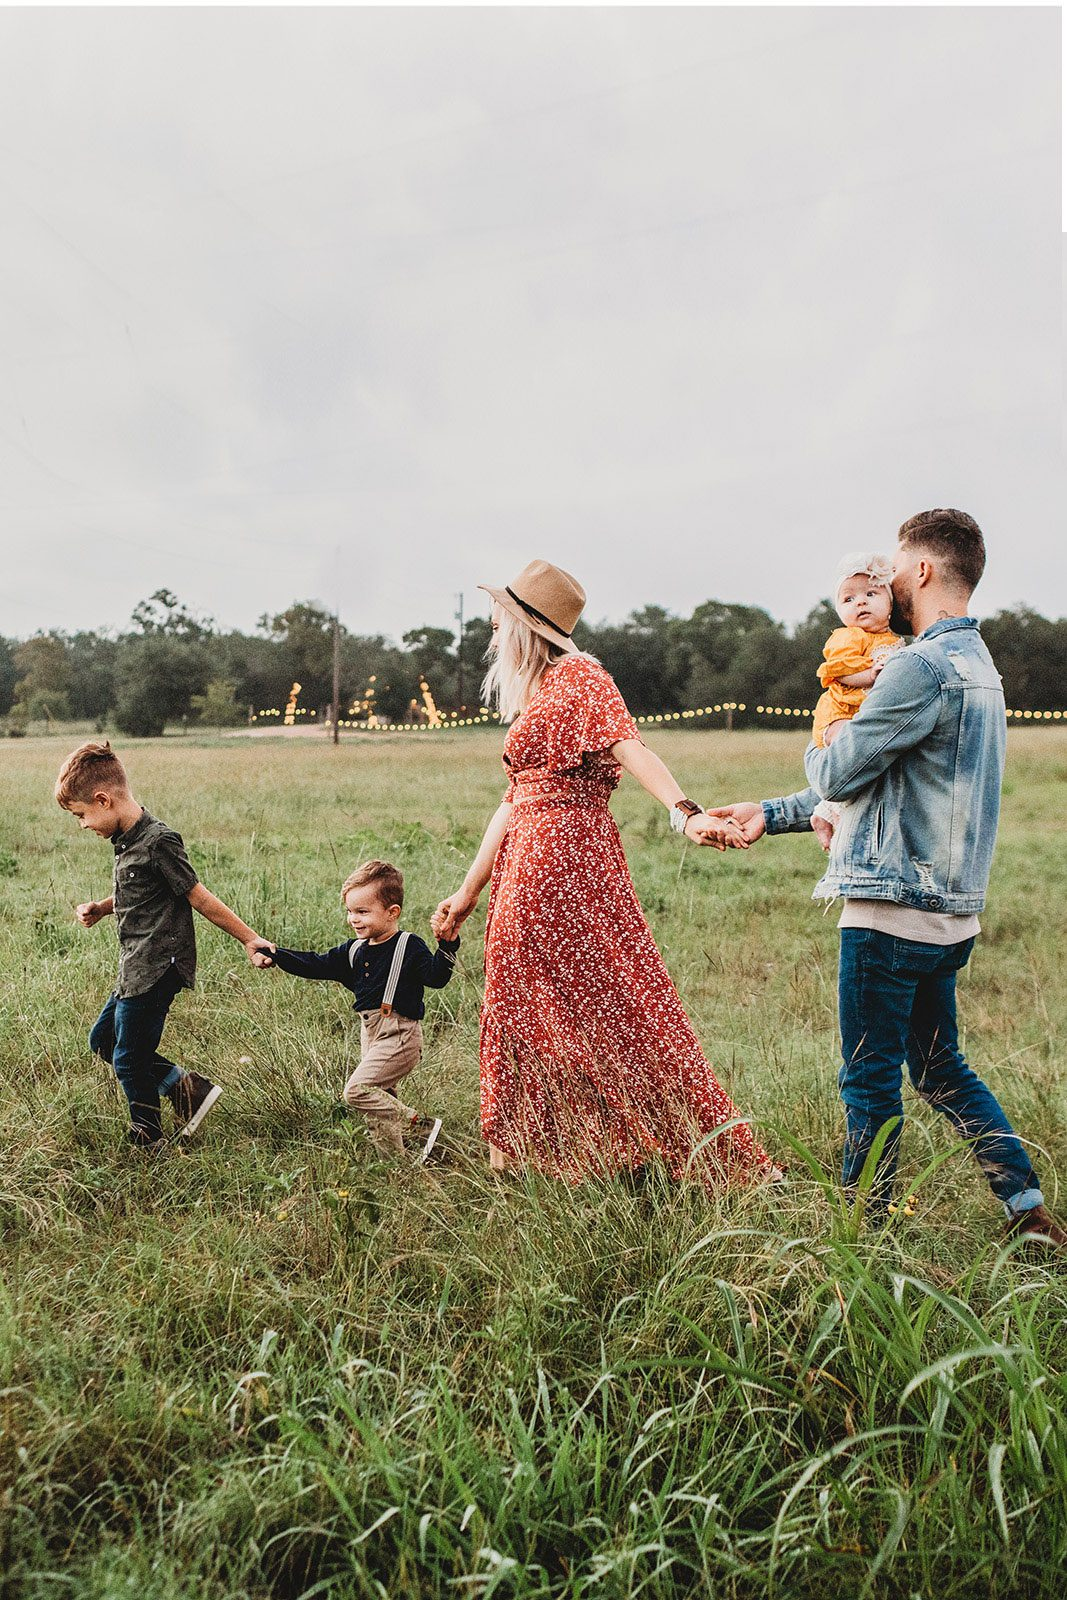 Man with his family walking through the country-side